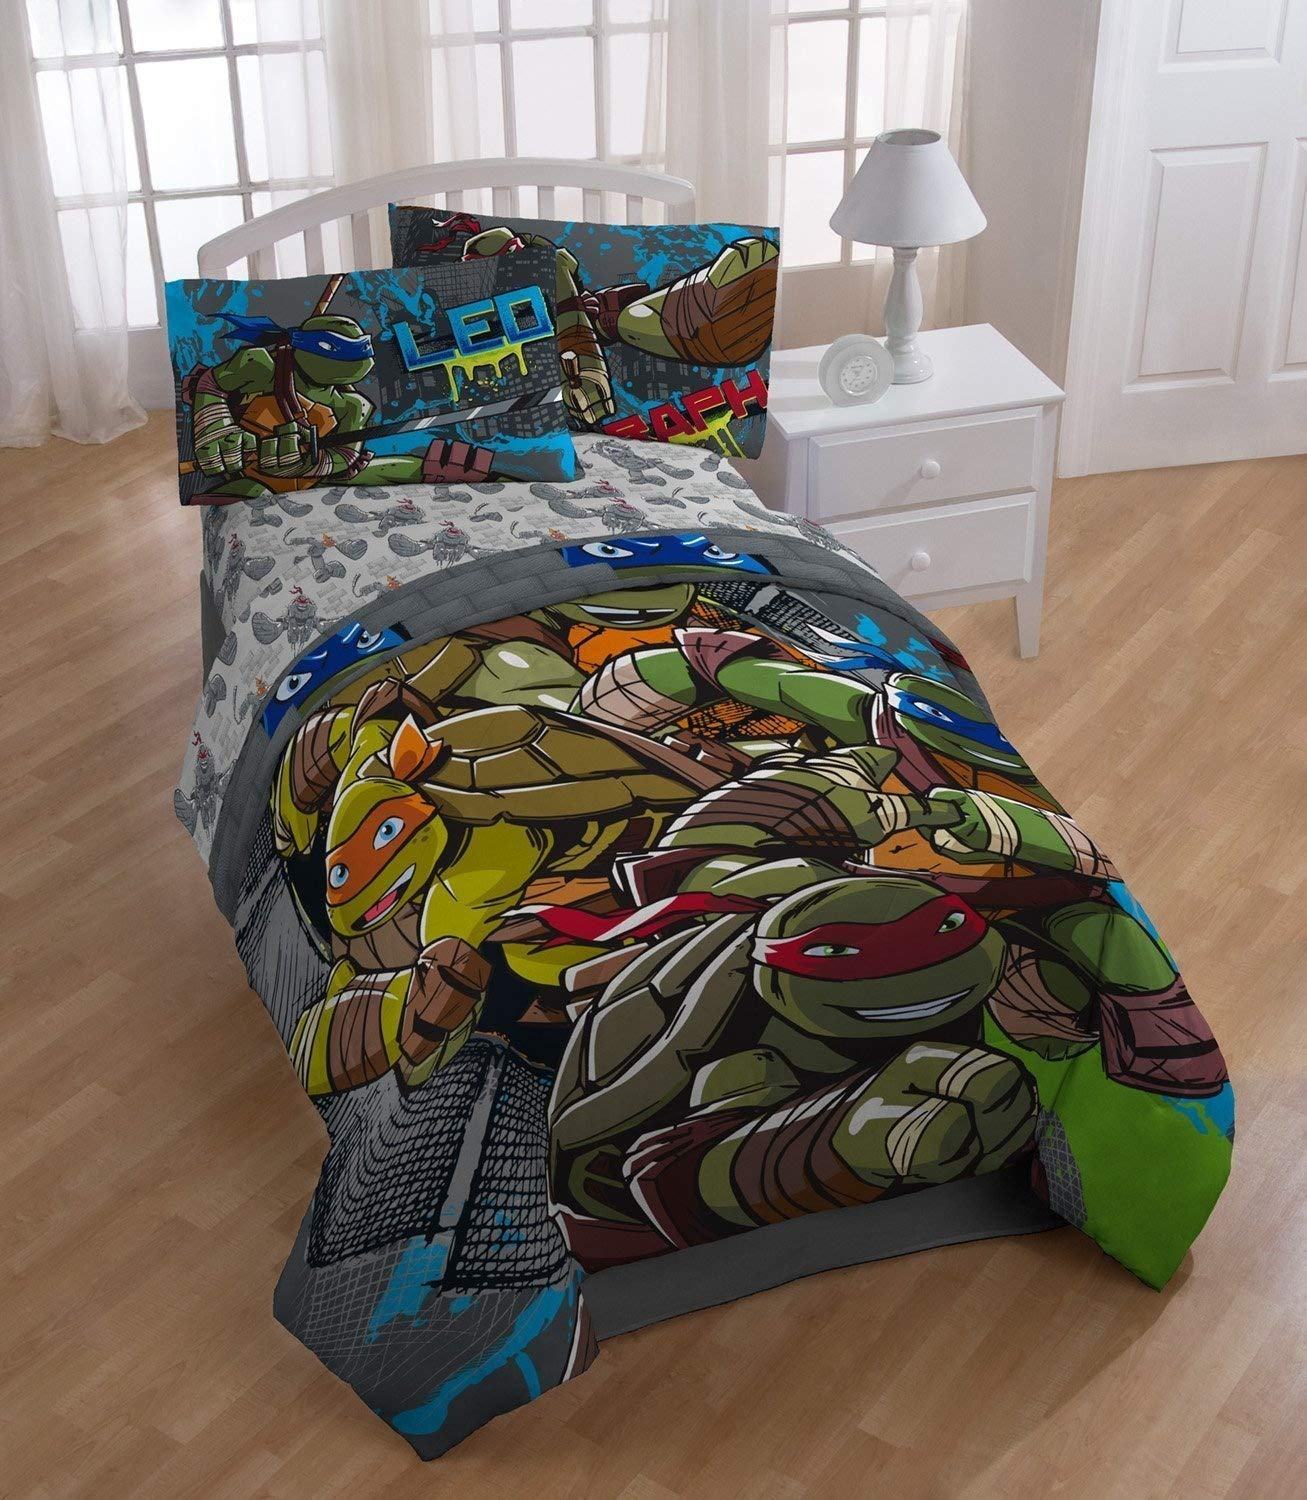 Jay Franco Teenage Mutant Ninja Turtles 'Cross Hatching' Twin/Full Reversible Comforter And Pillow Sham Set